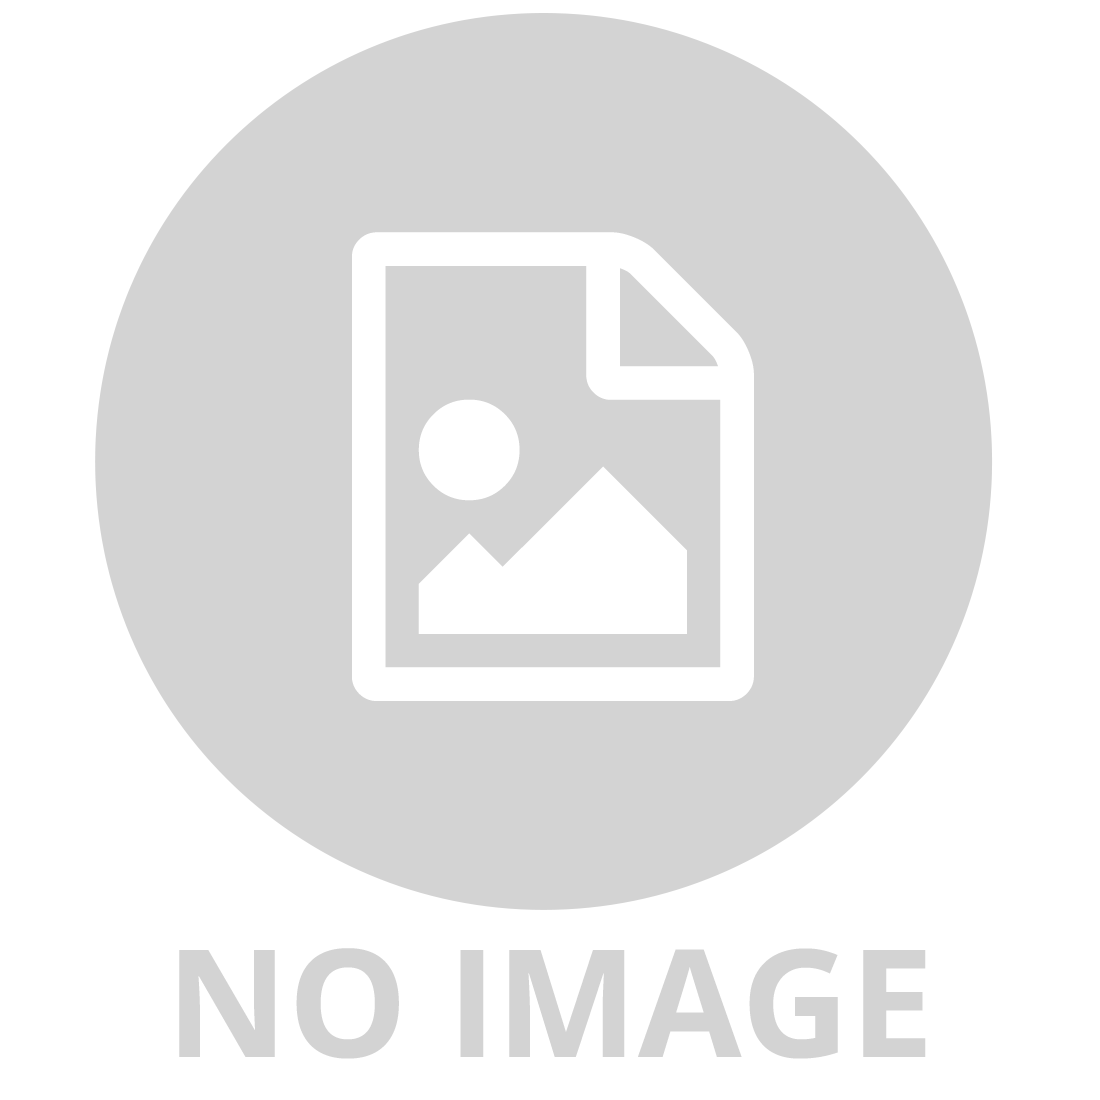 ARTESANIA LATINA SWIFT 1805 WOODEN MODEL KIT